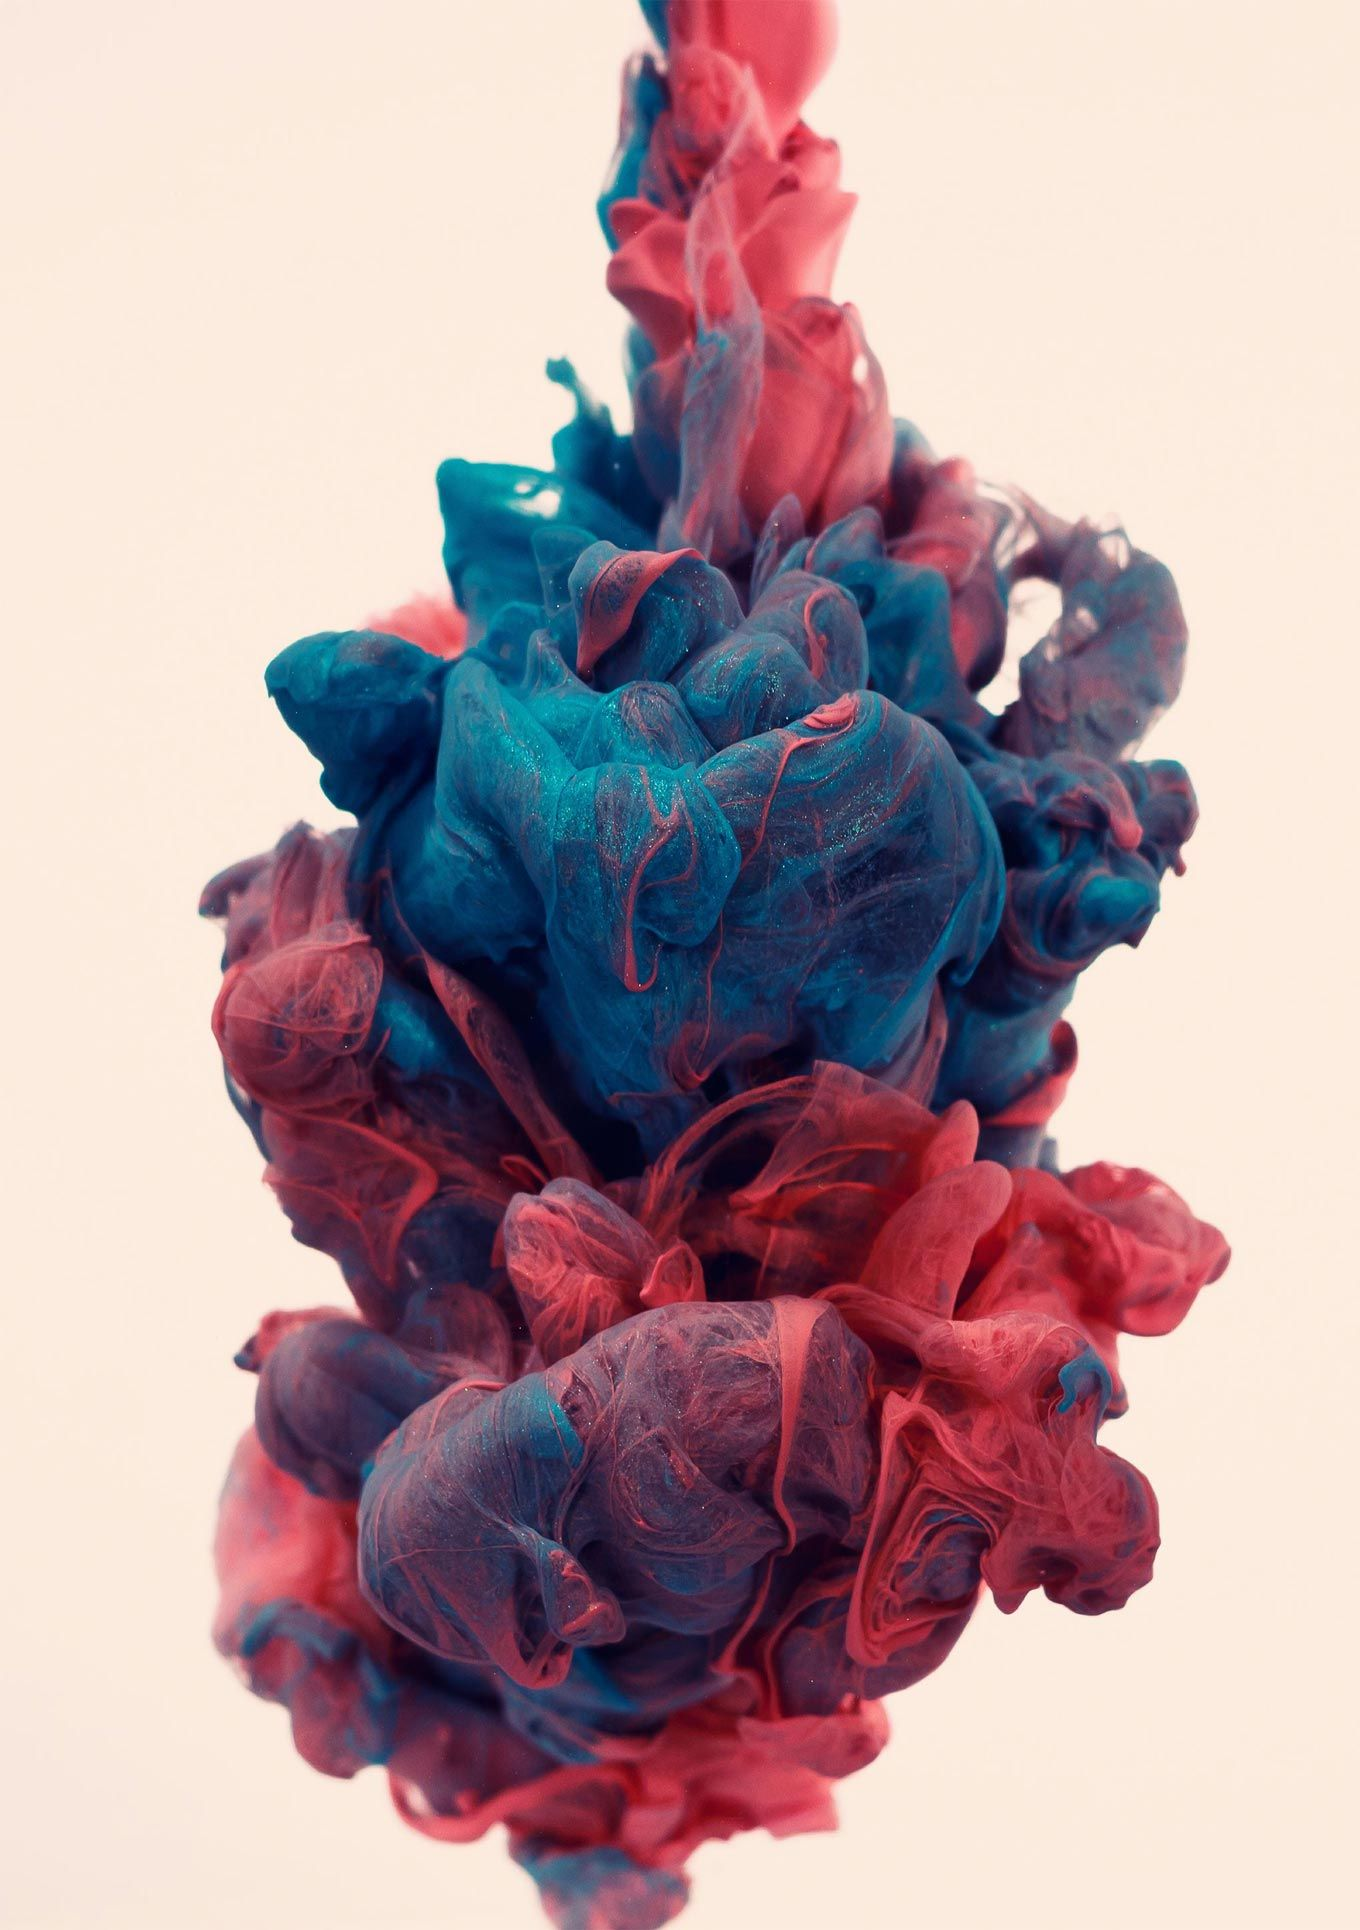 Amazing Ink Manipulations By Alberto Seveso Aesthetics - New incredible underwater ink photographs alberto seveso